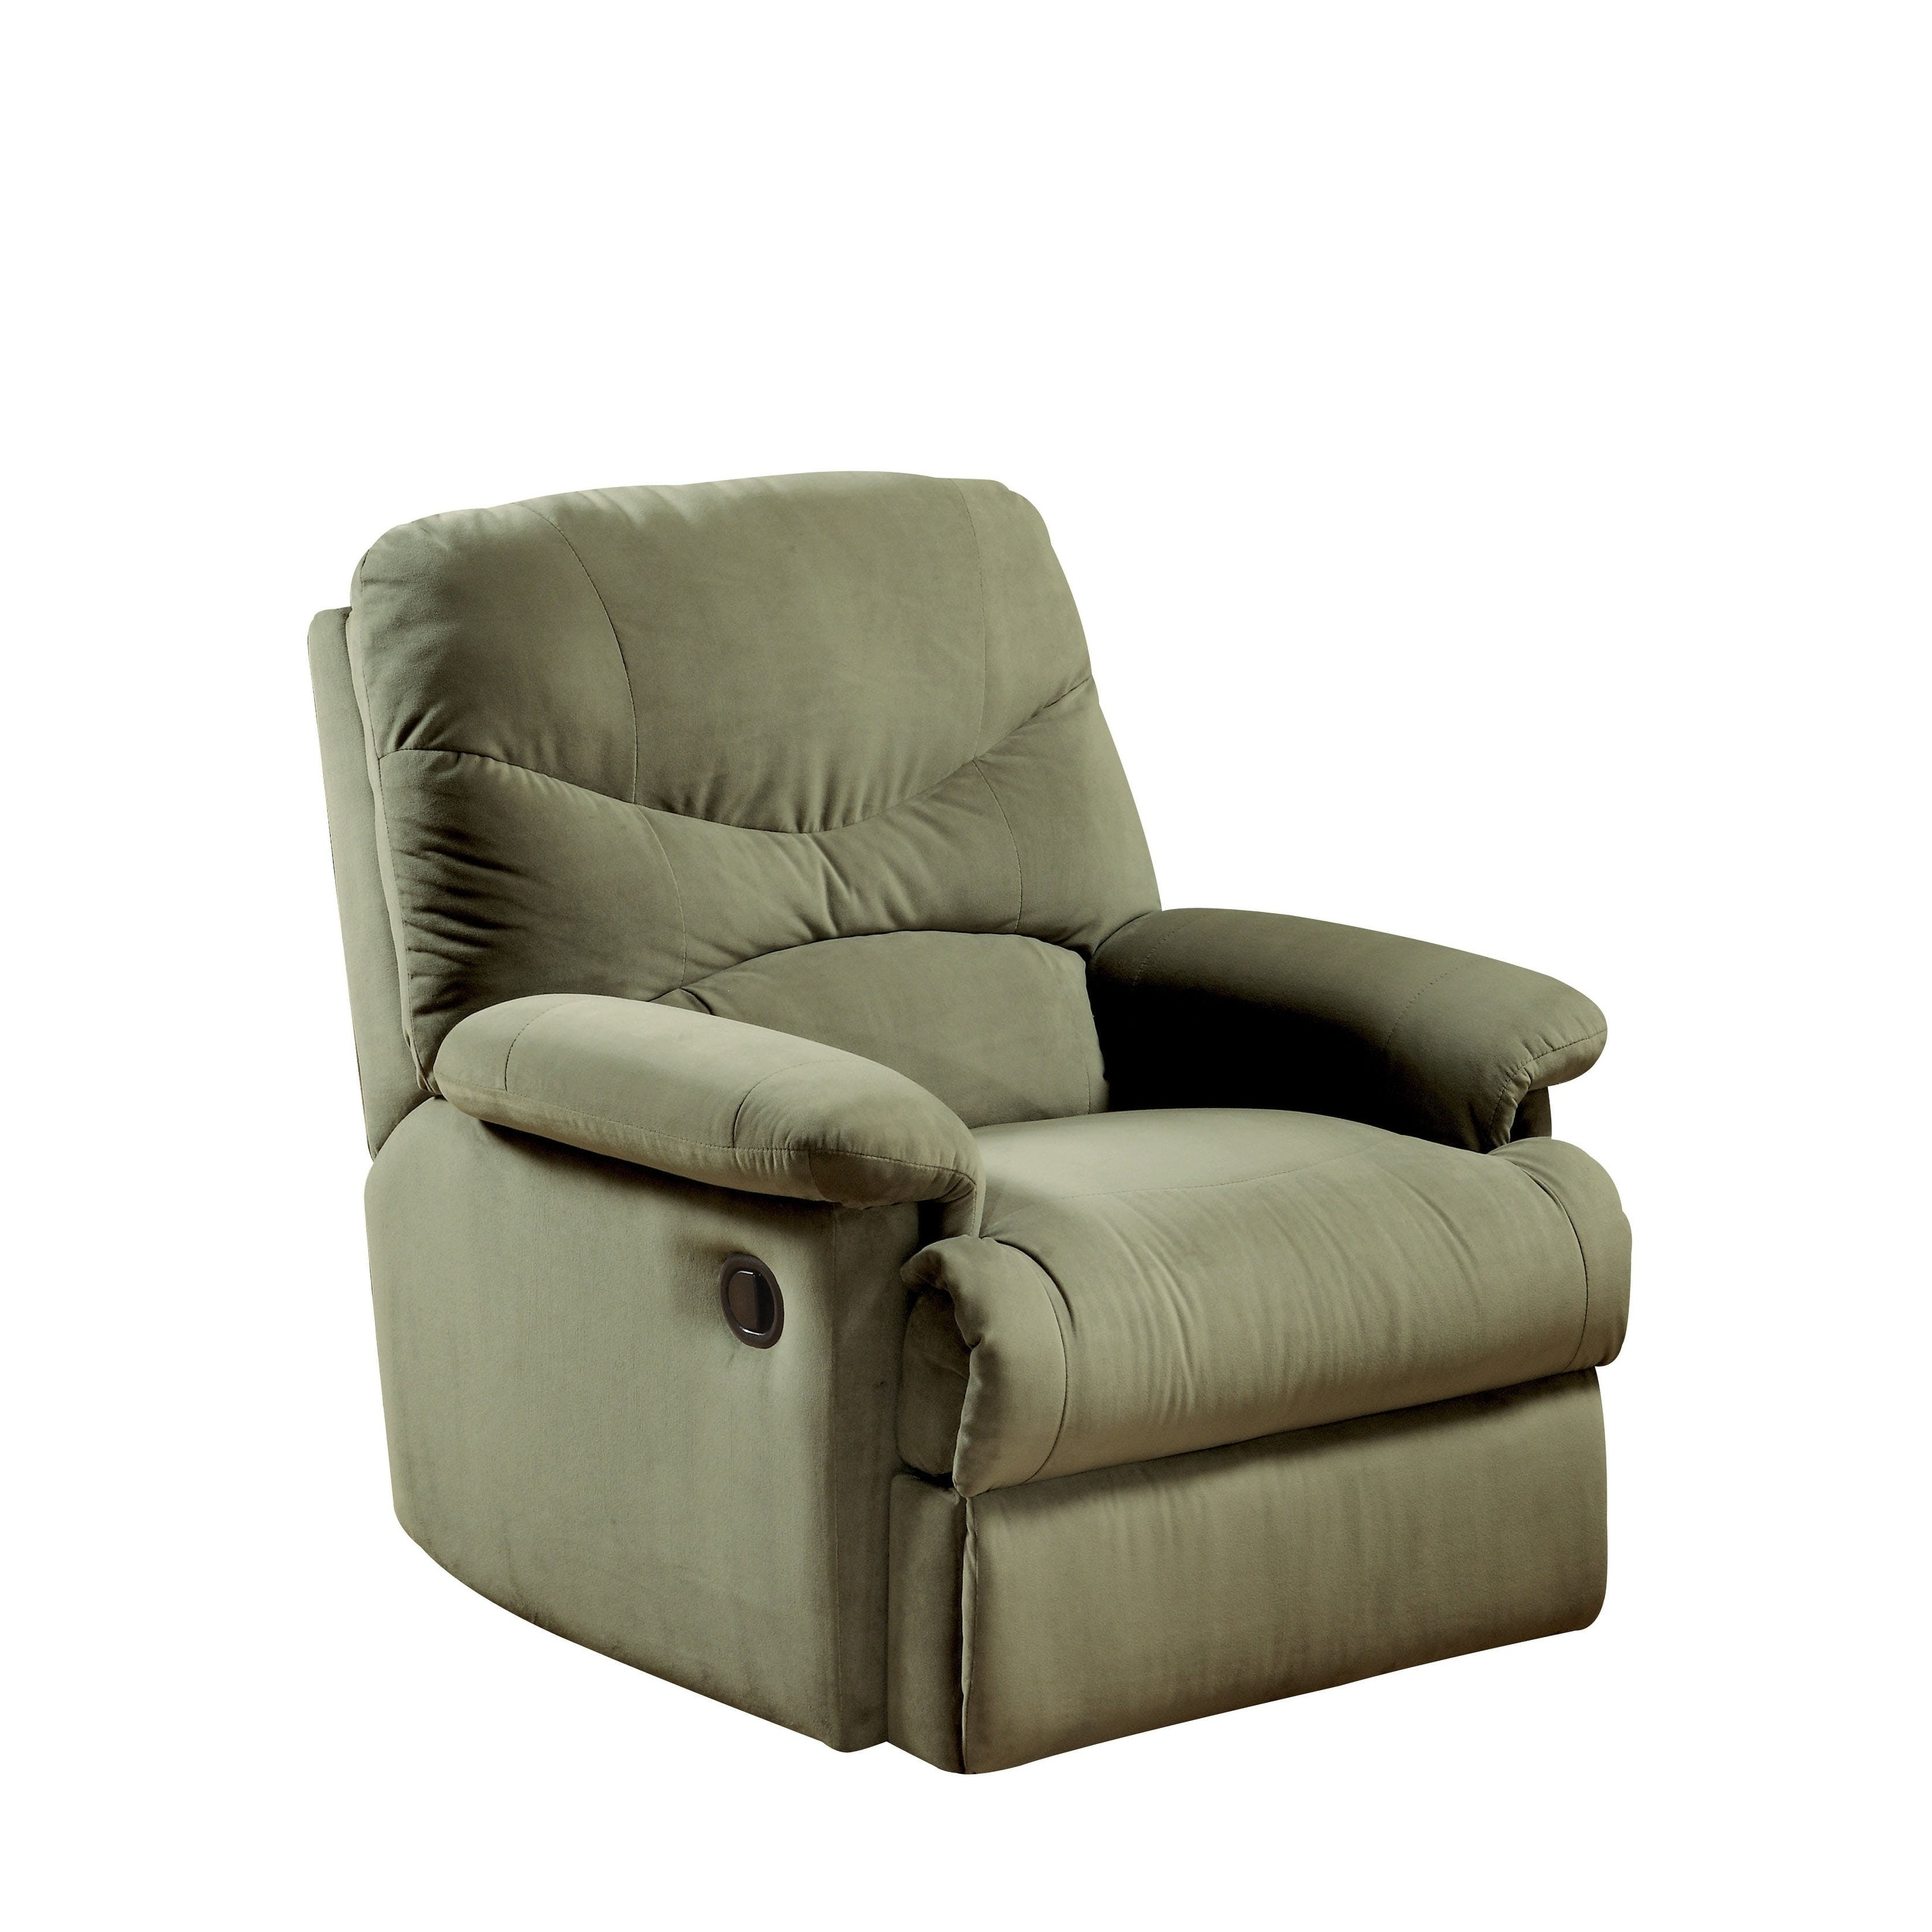 Admirable Fabric Upholstered Recliner With Padded Arms Sage Green Gmtry Best Dining Table And Chair Ideas Images Gmtryco